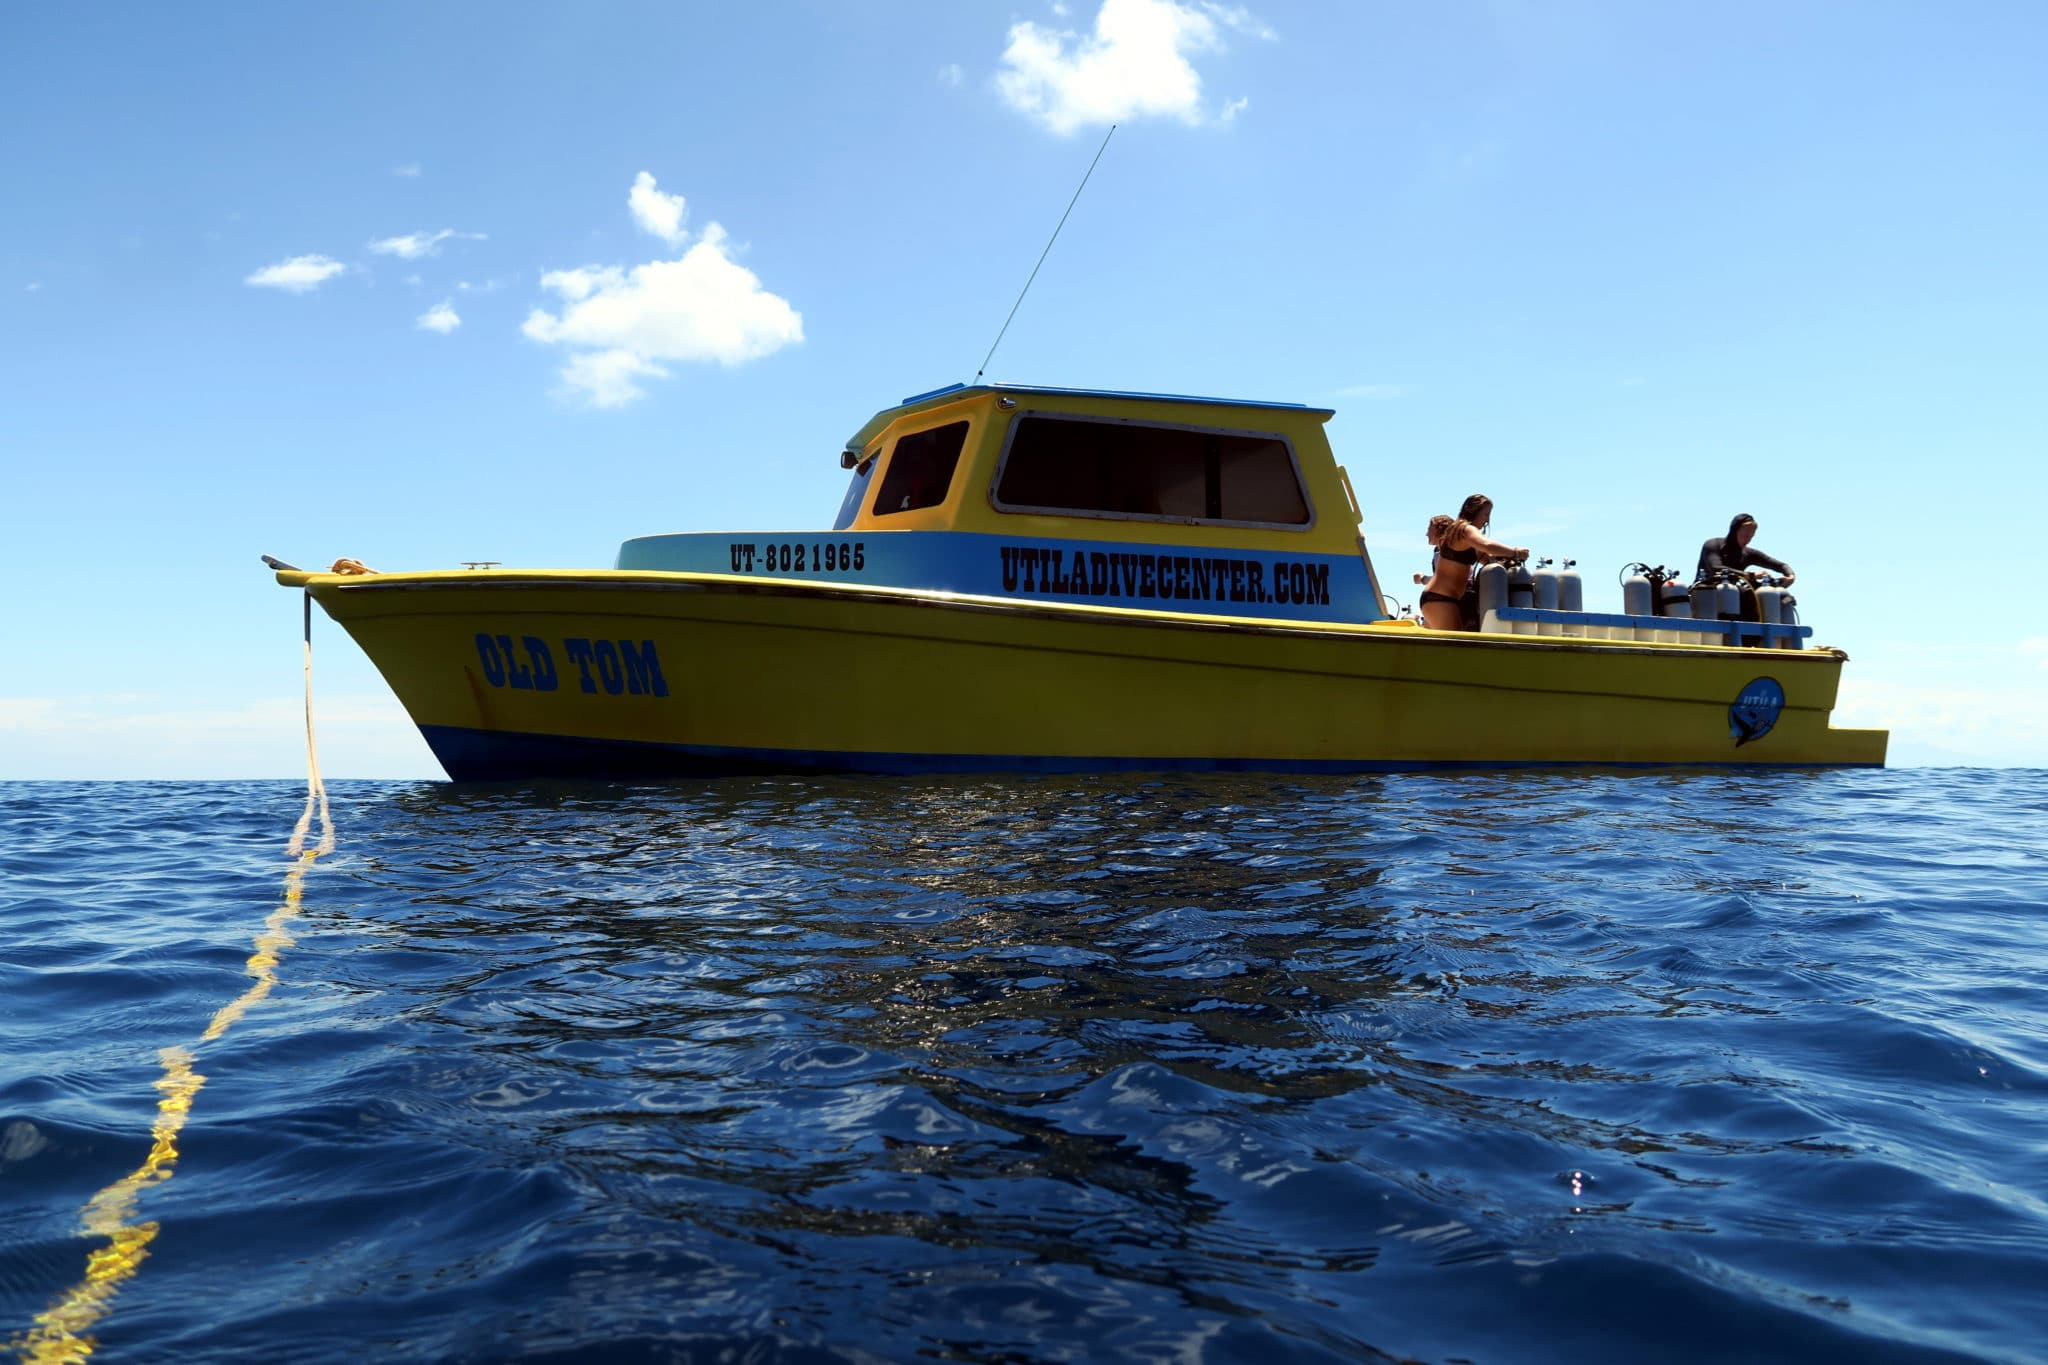 Utila Dive Center boat